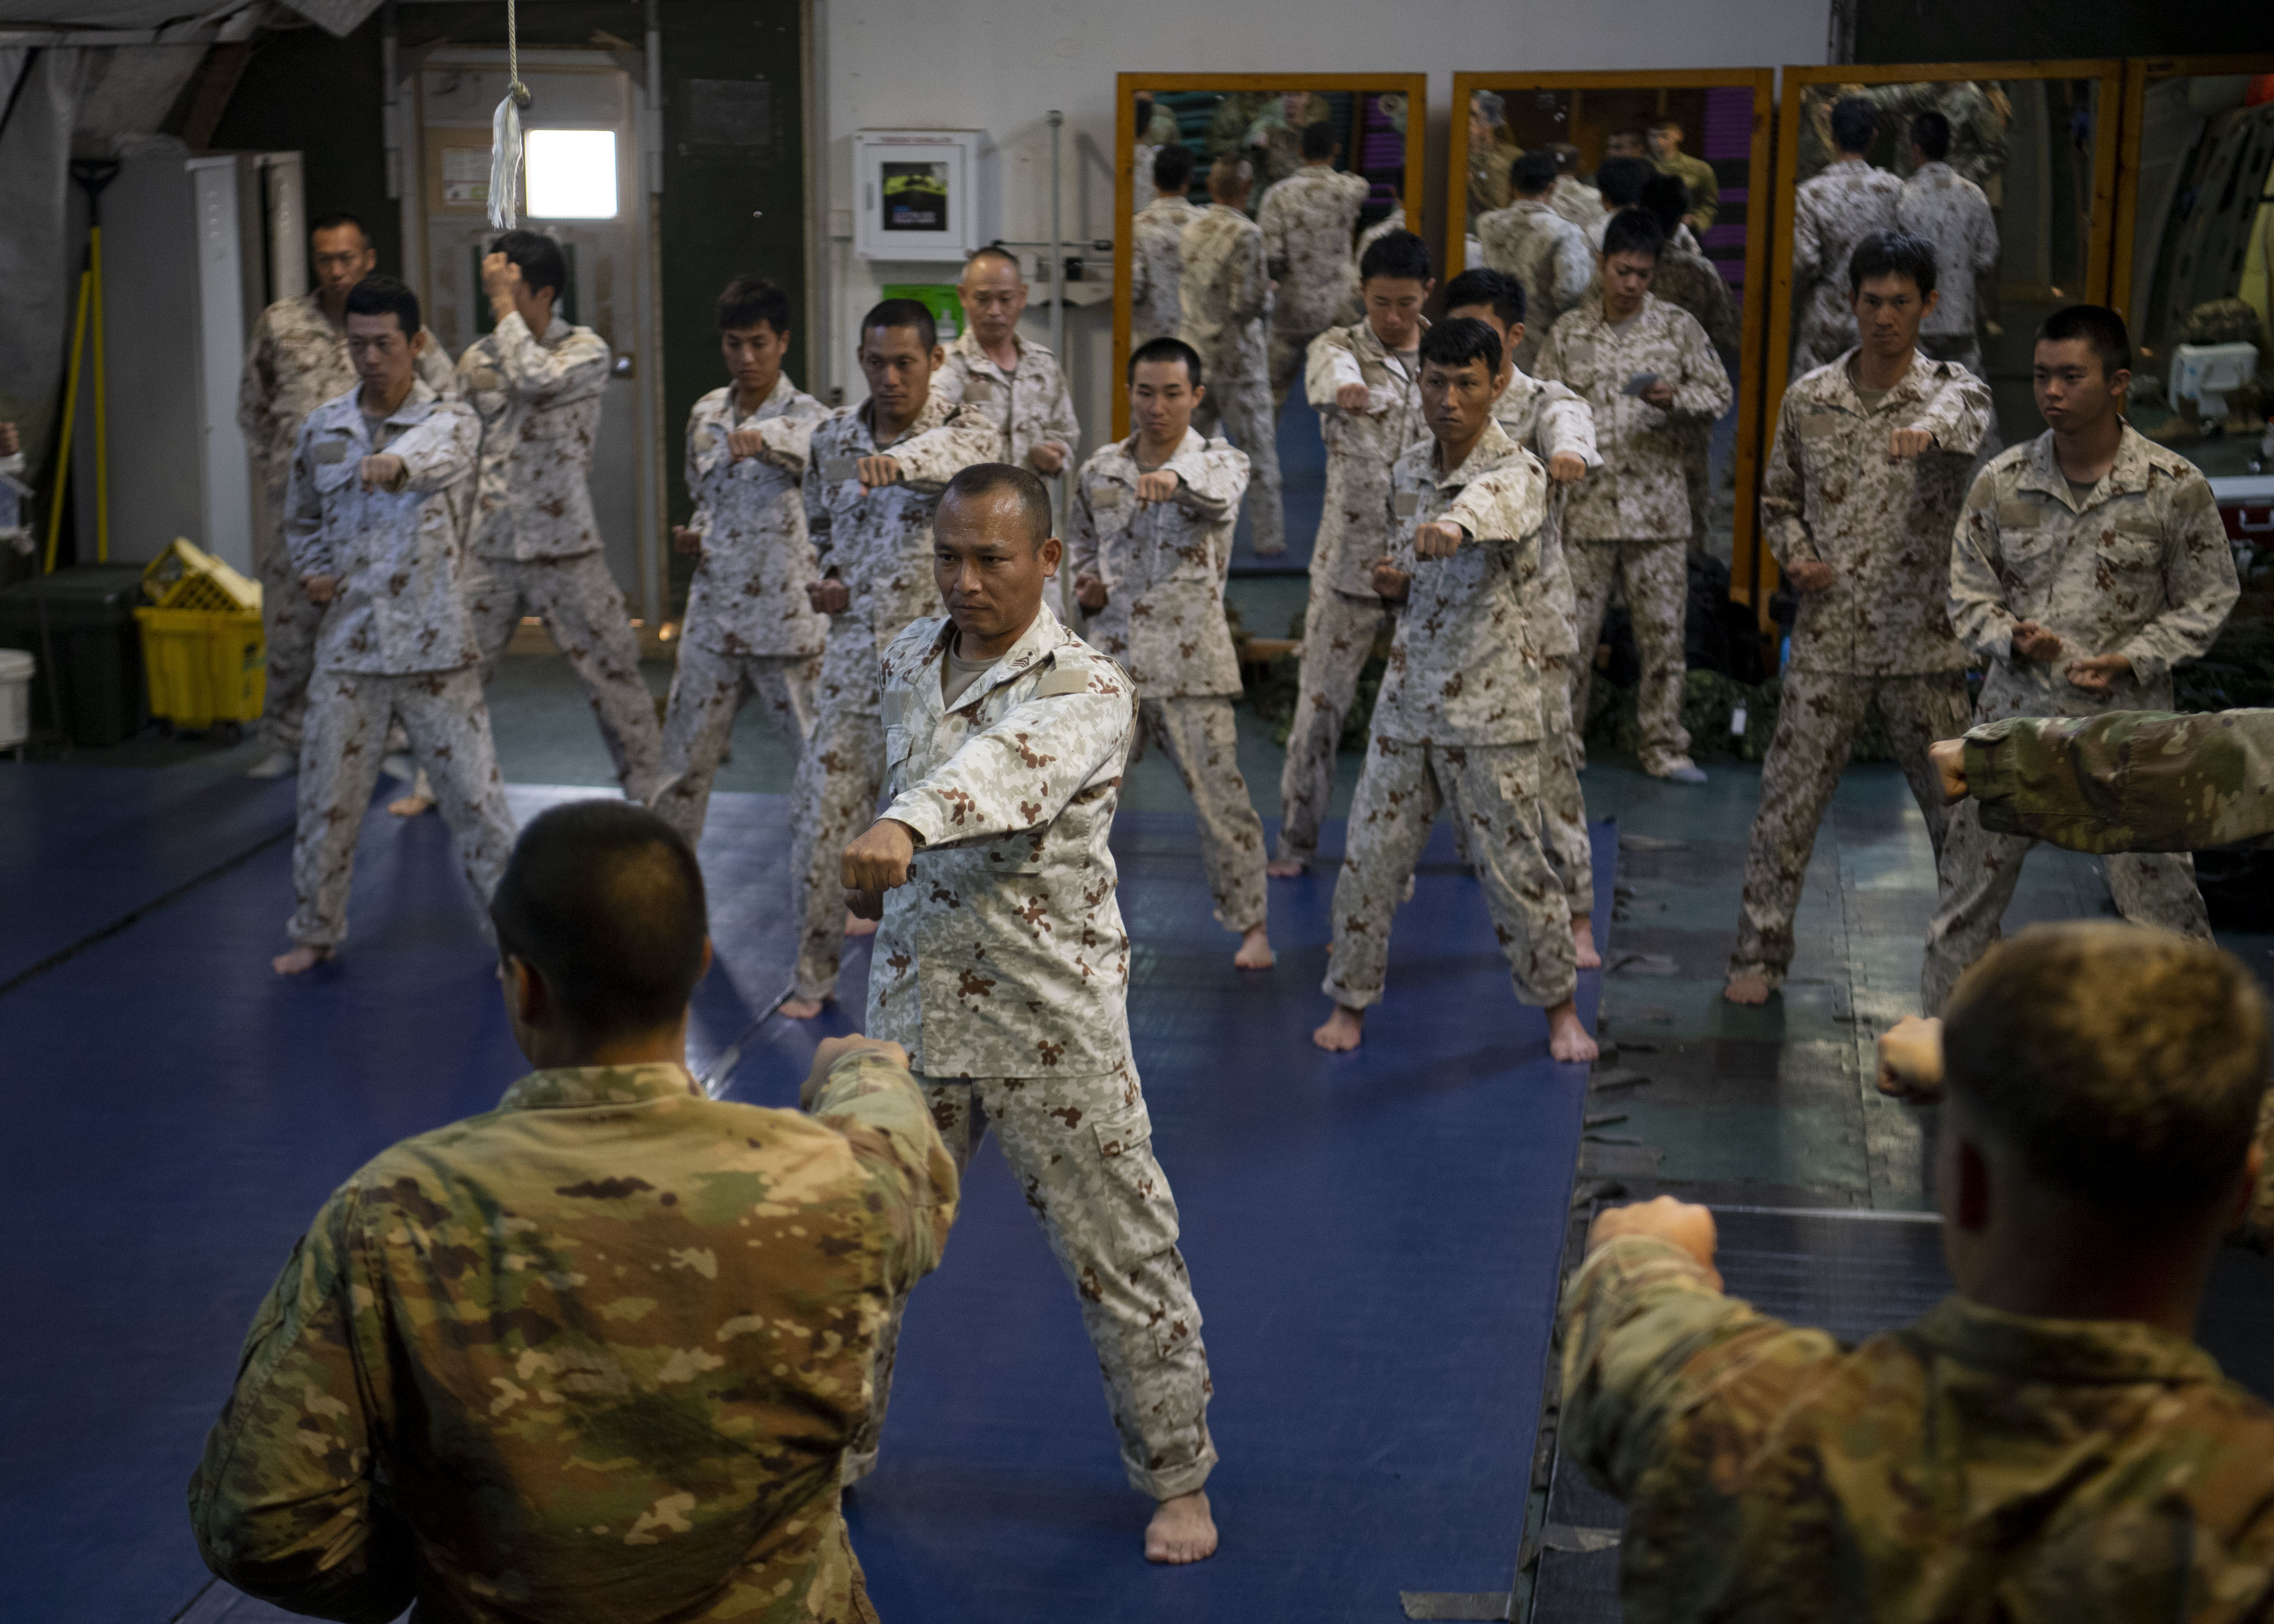 Japanese Ground Self-Defense Force Command Sgt. Maj. Kentaro Nakazato, command sergeant major of the 16th infantry regiment company, leads karate-style striking practice during a combatives exchange with Combined Joint Task Force-Horn of Africa (CJTF-HOA) at Camp Lemonnier, Djibouti, July 1, 2019. The purpose of the joint exchange was to share Japanese combative techniques and forge relationships between CJTF-HOA and the JGSDF. (U.S. Air Force photo by Staff Sgt. J.D. Strong II)